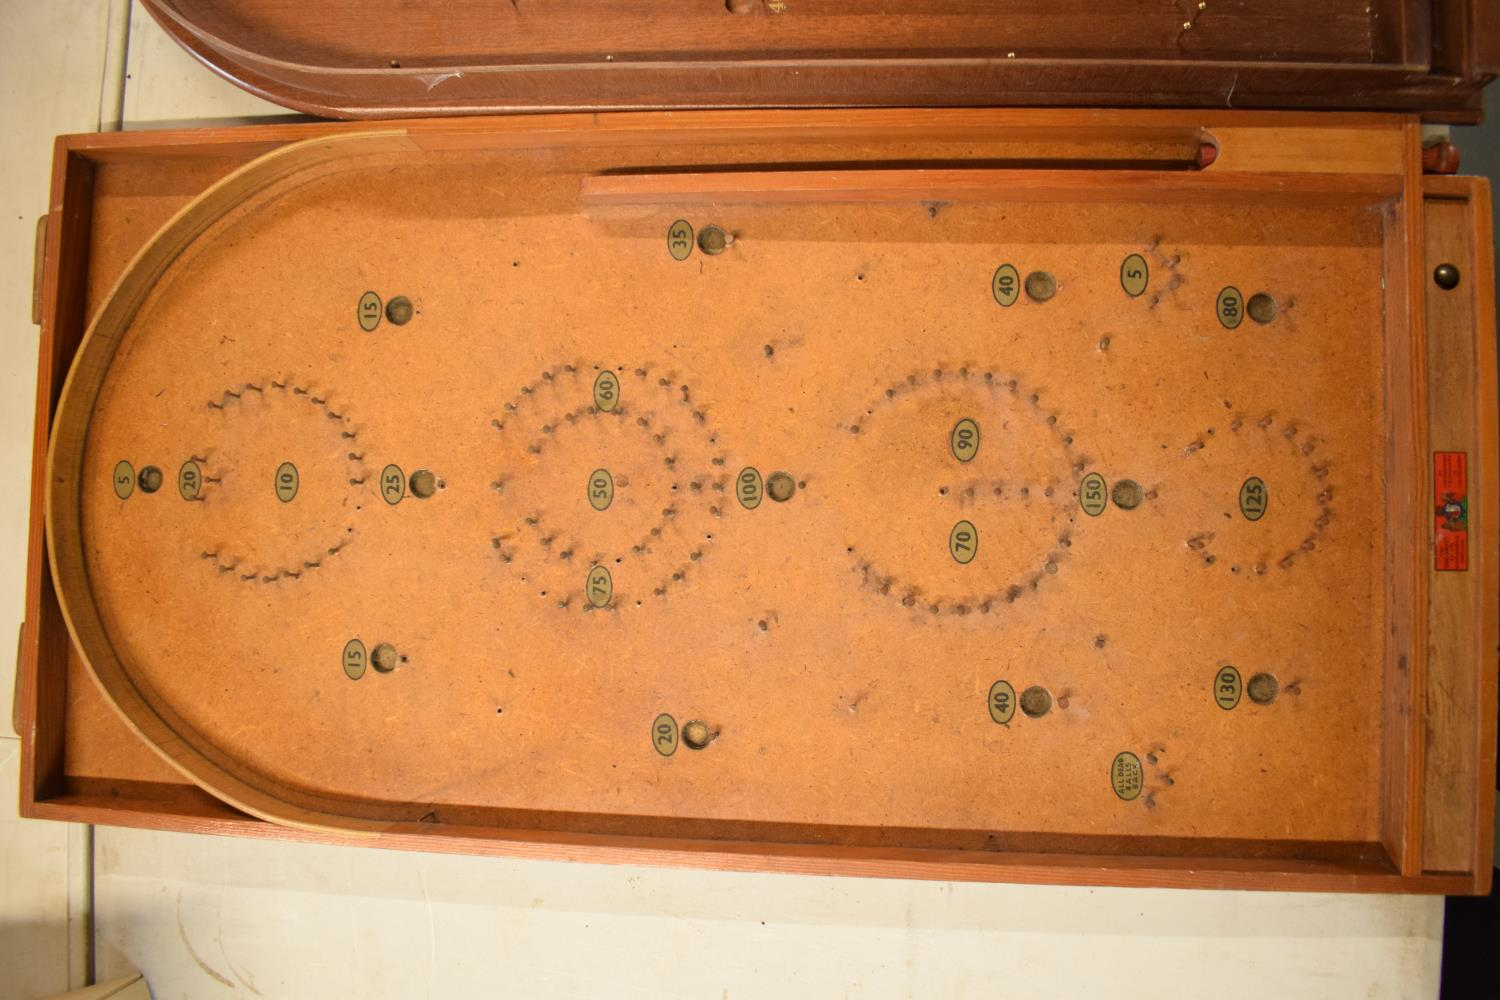 A pair of 20th century wooden bagatelle games complete with associated balls. One is made by Chad - Image 4 of 5